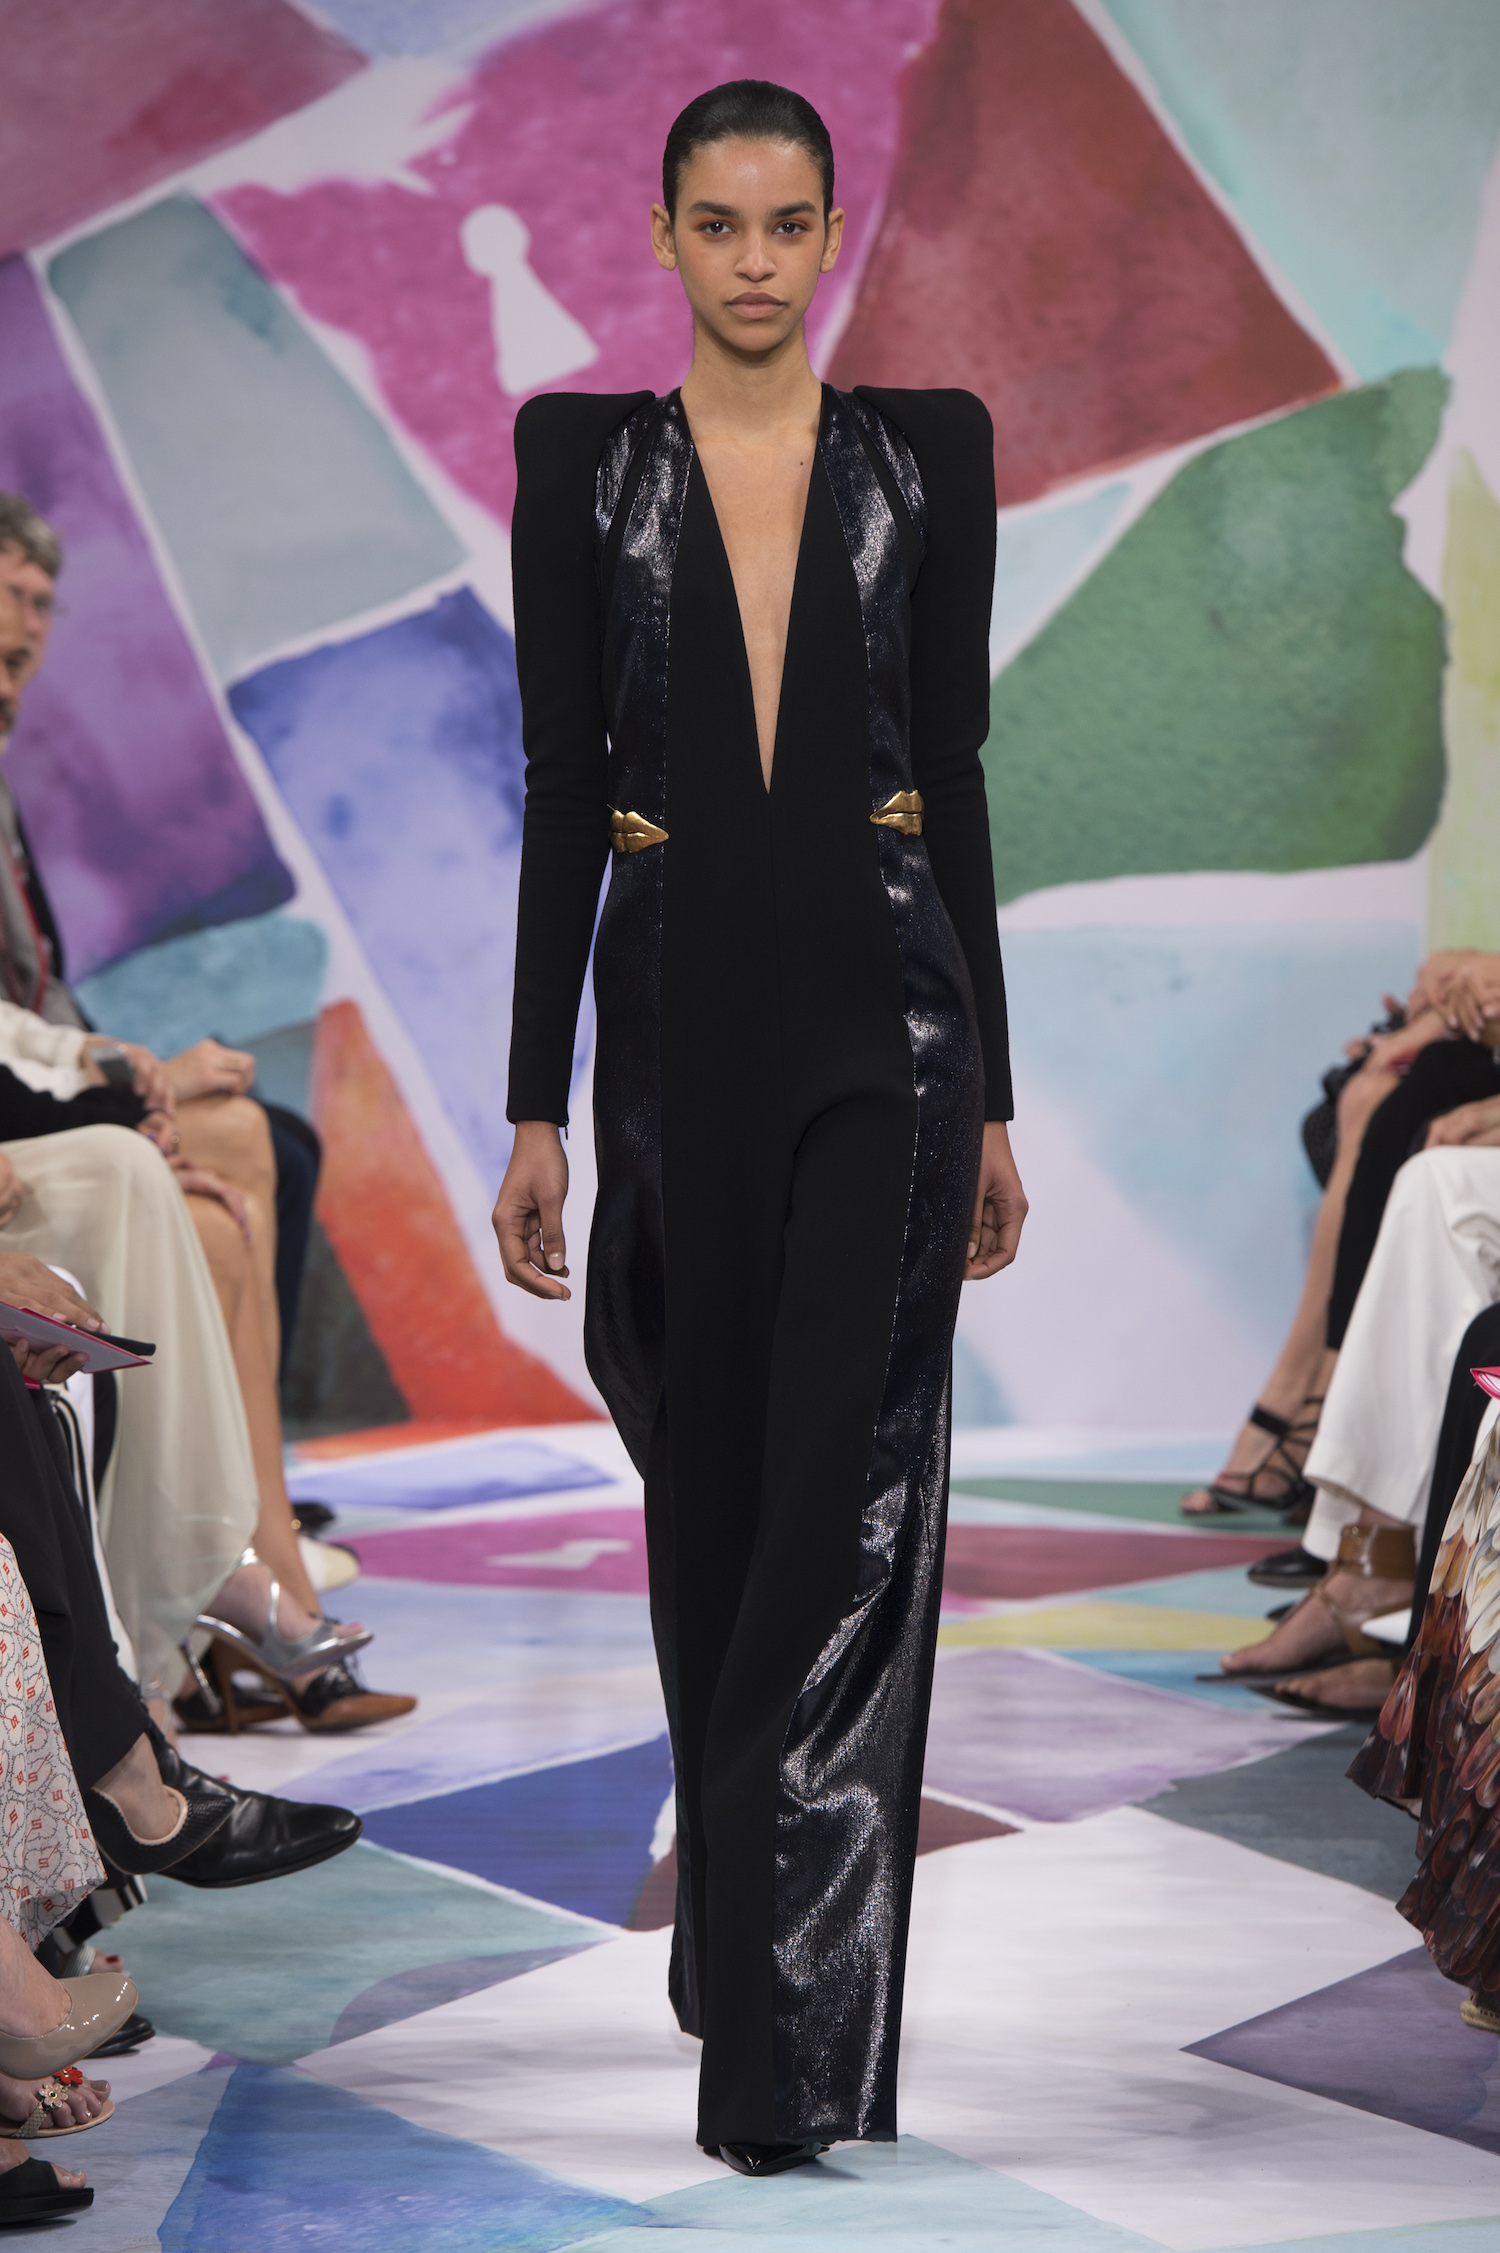 SCHIAPARELLI COUTURE - Fall Winter 2016/17